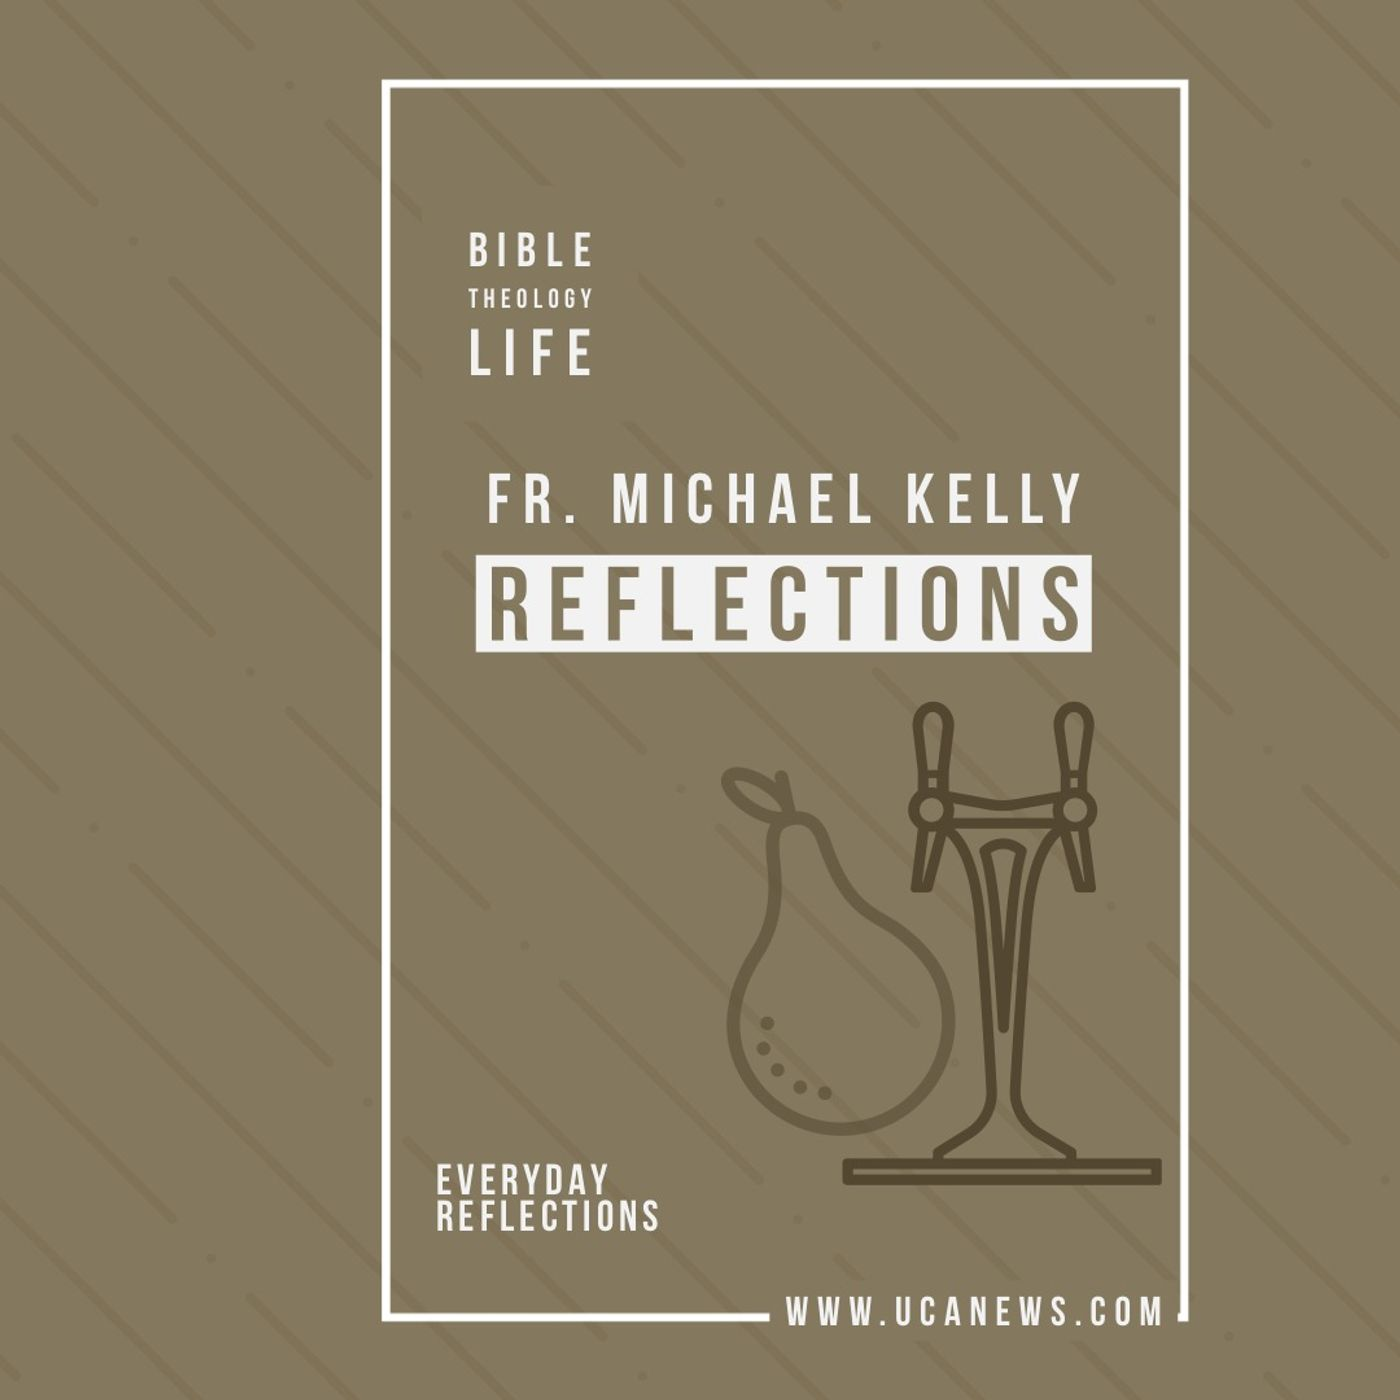 Reflections with Fr. Michael Kelly - Thursday 14 Oct, 2021